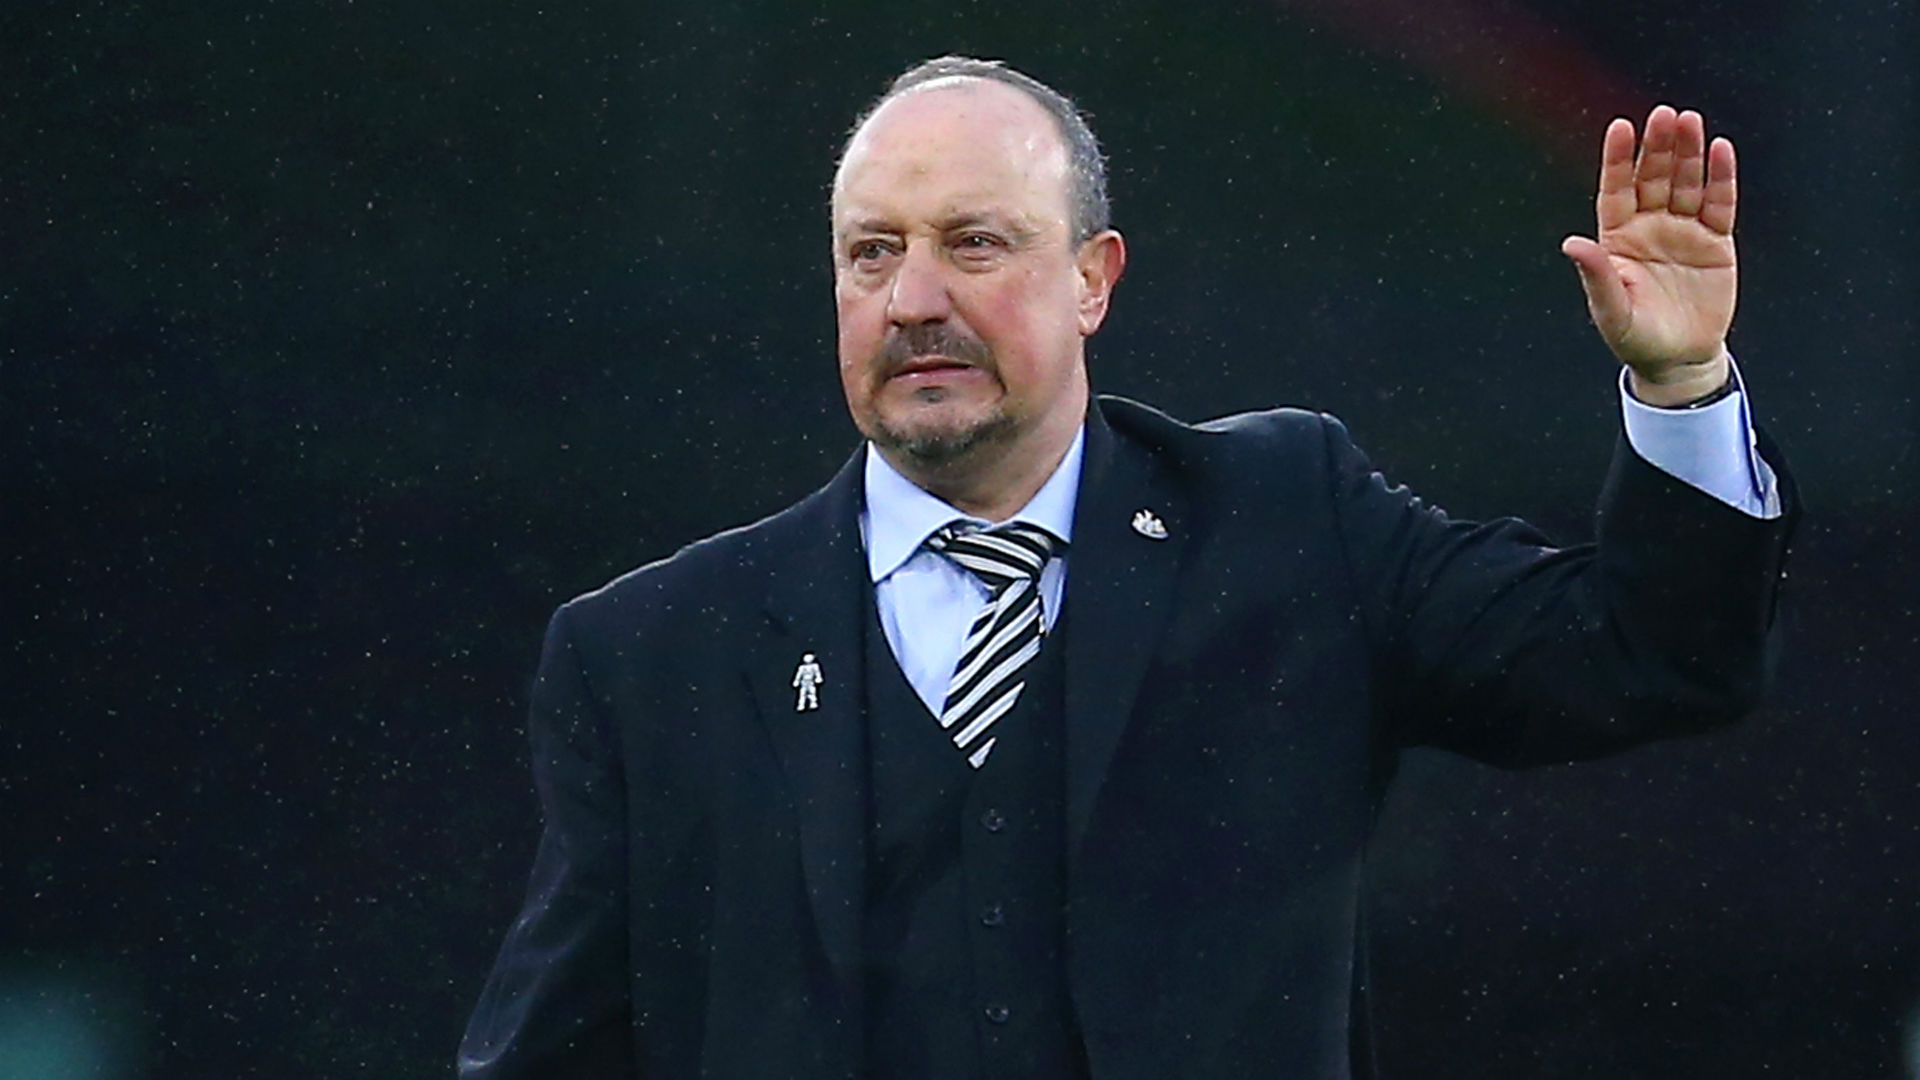 Rafael Benitez Newcastle United Premier League 2019